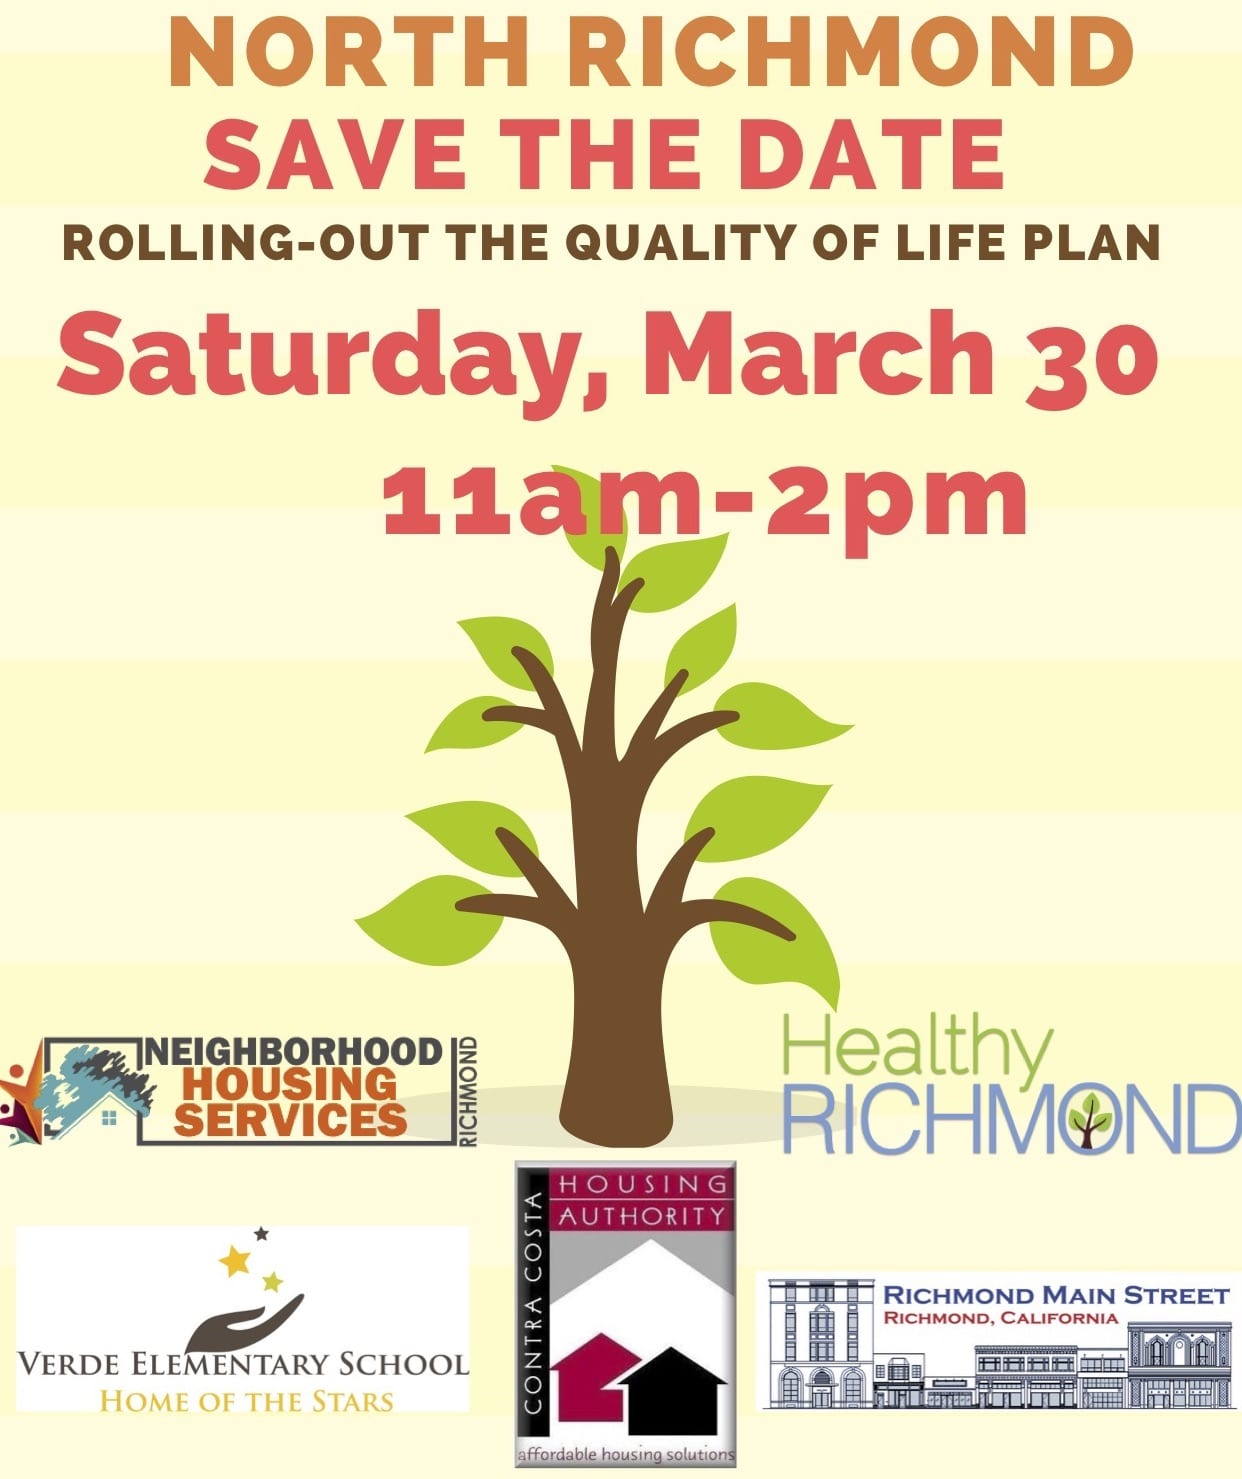 Save the Date: North Richmond Quality of Life Plan Roll-out